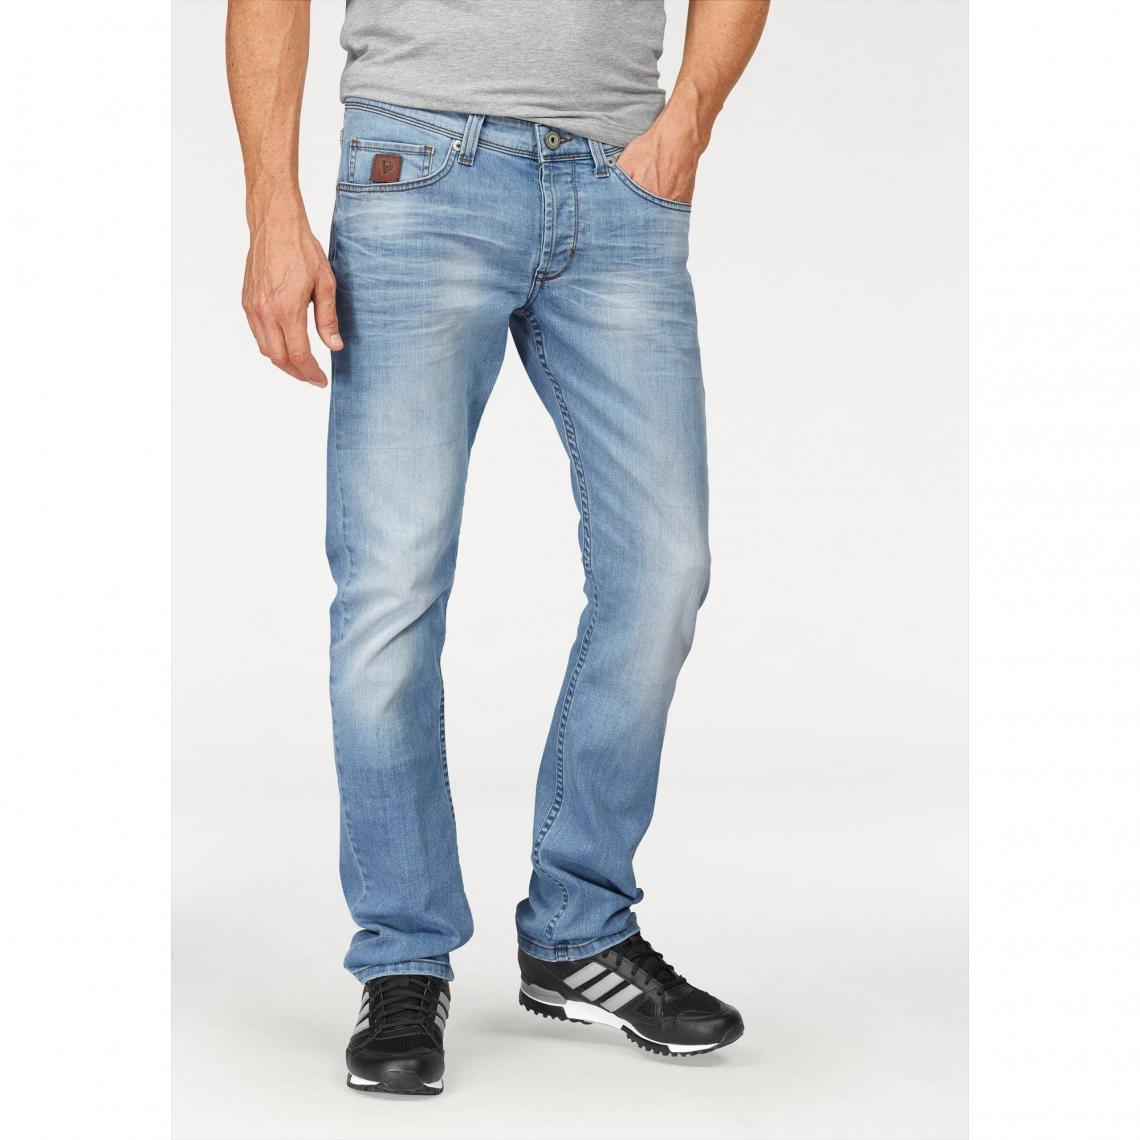 Coupe Jean Homme Jean Coupe Slim Stretch Homme Jimmy Bruno Banani Bleu 3 Suisses